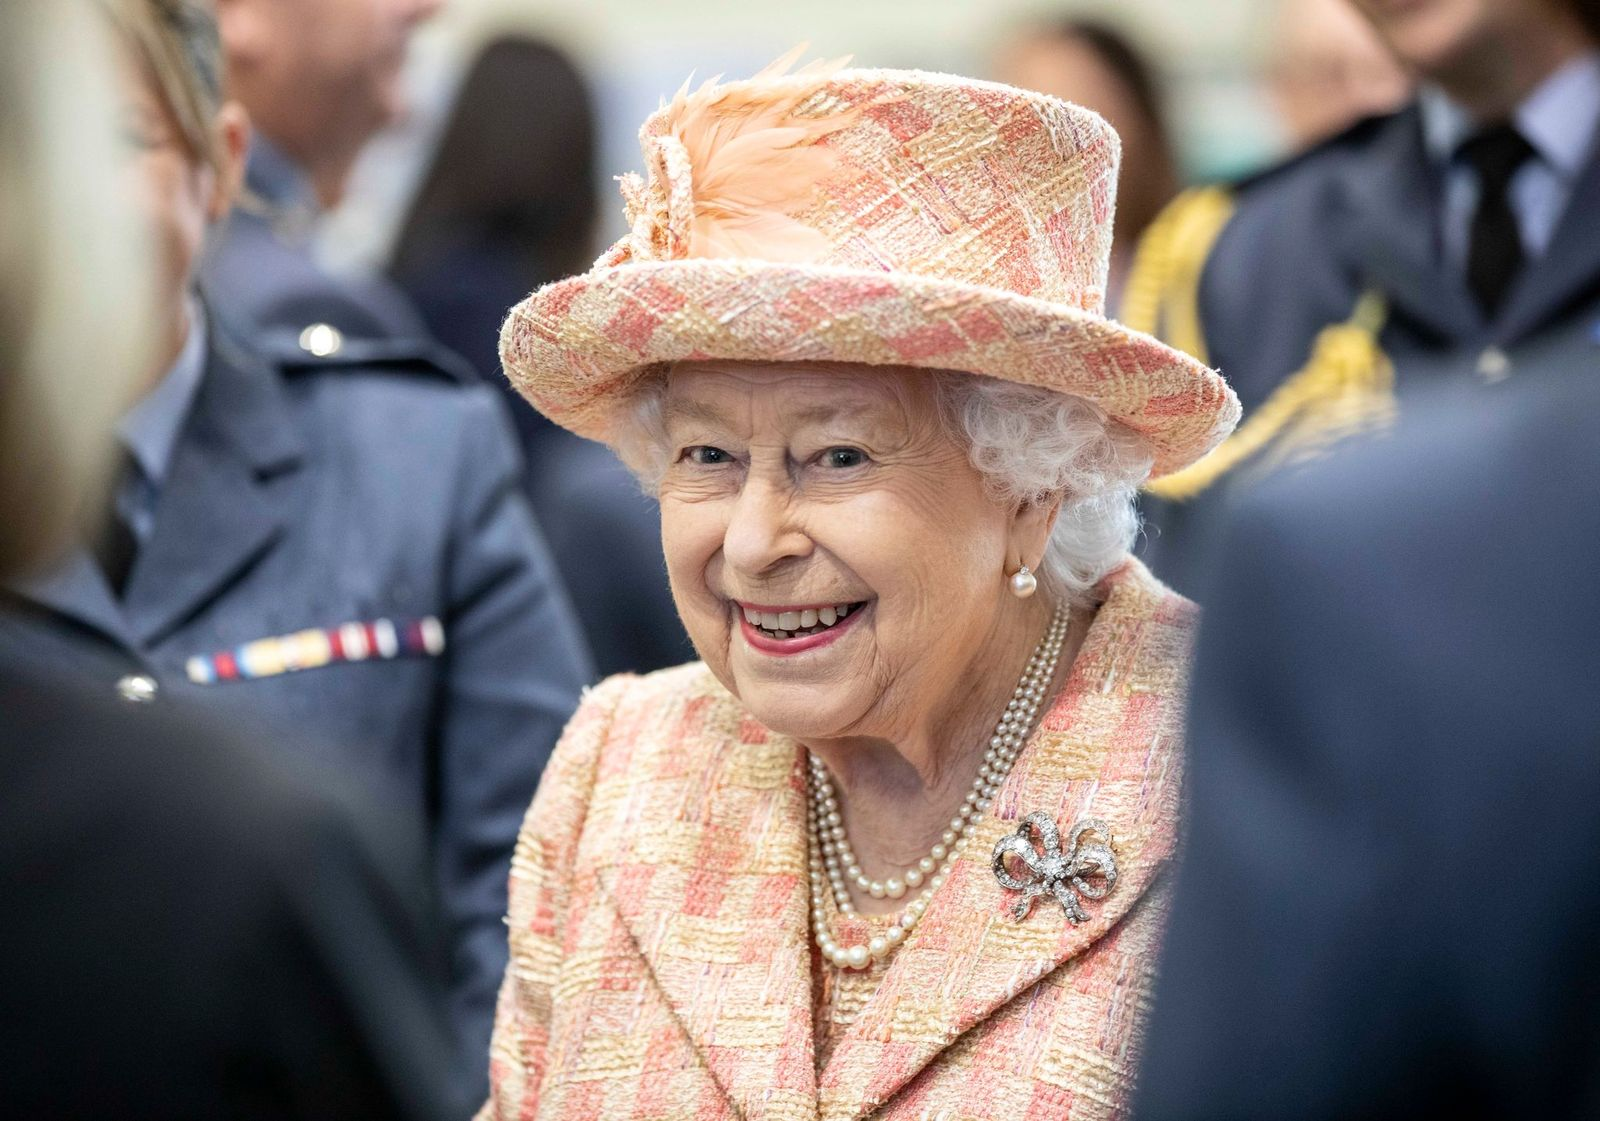 The Queen meets personnel at RAF Marham where she inspected the new integrated training center at Royal Air Force Marham on February 3, 2020, in King's Lynn, England | Photo: Richard Pohle - WPA Pool/Getty Images